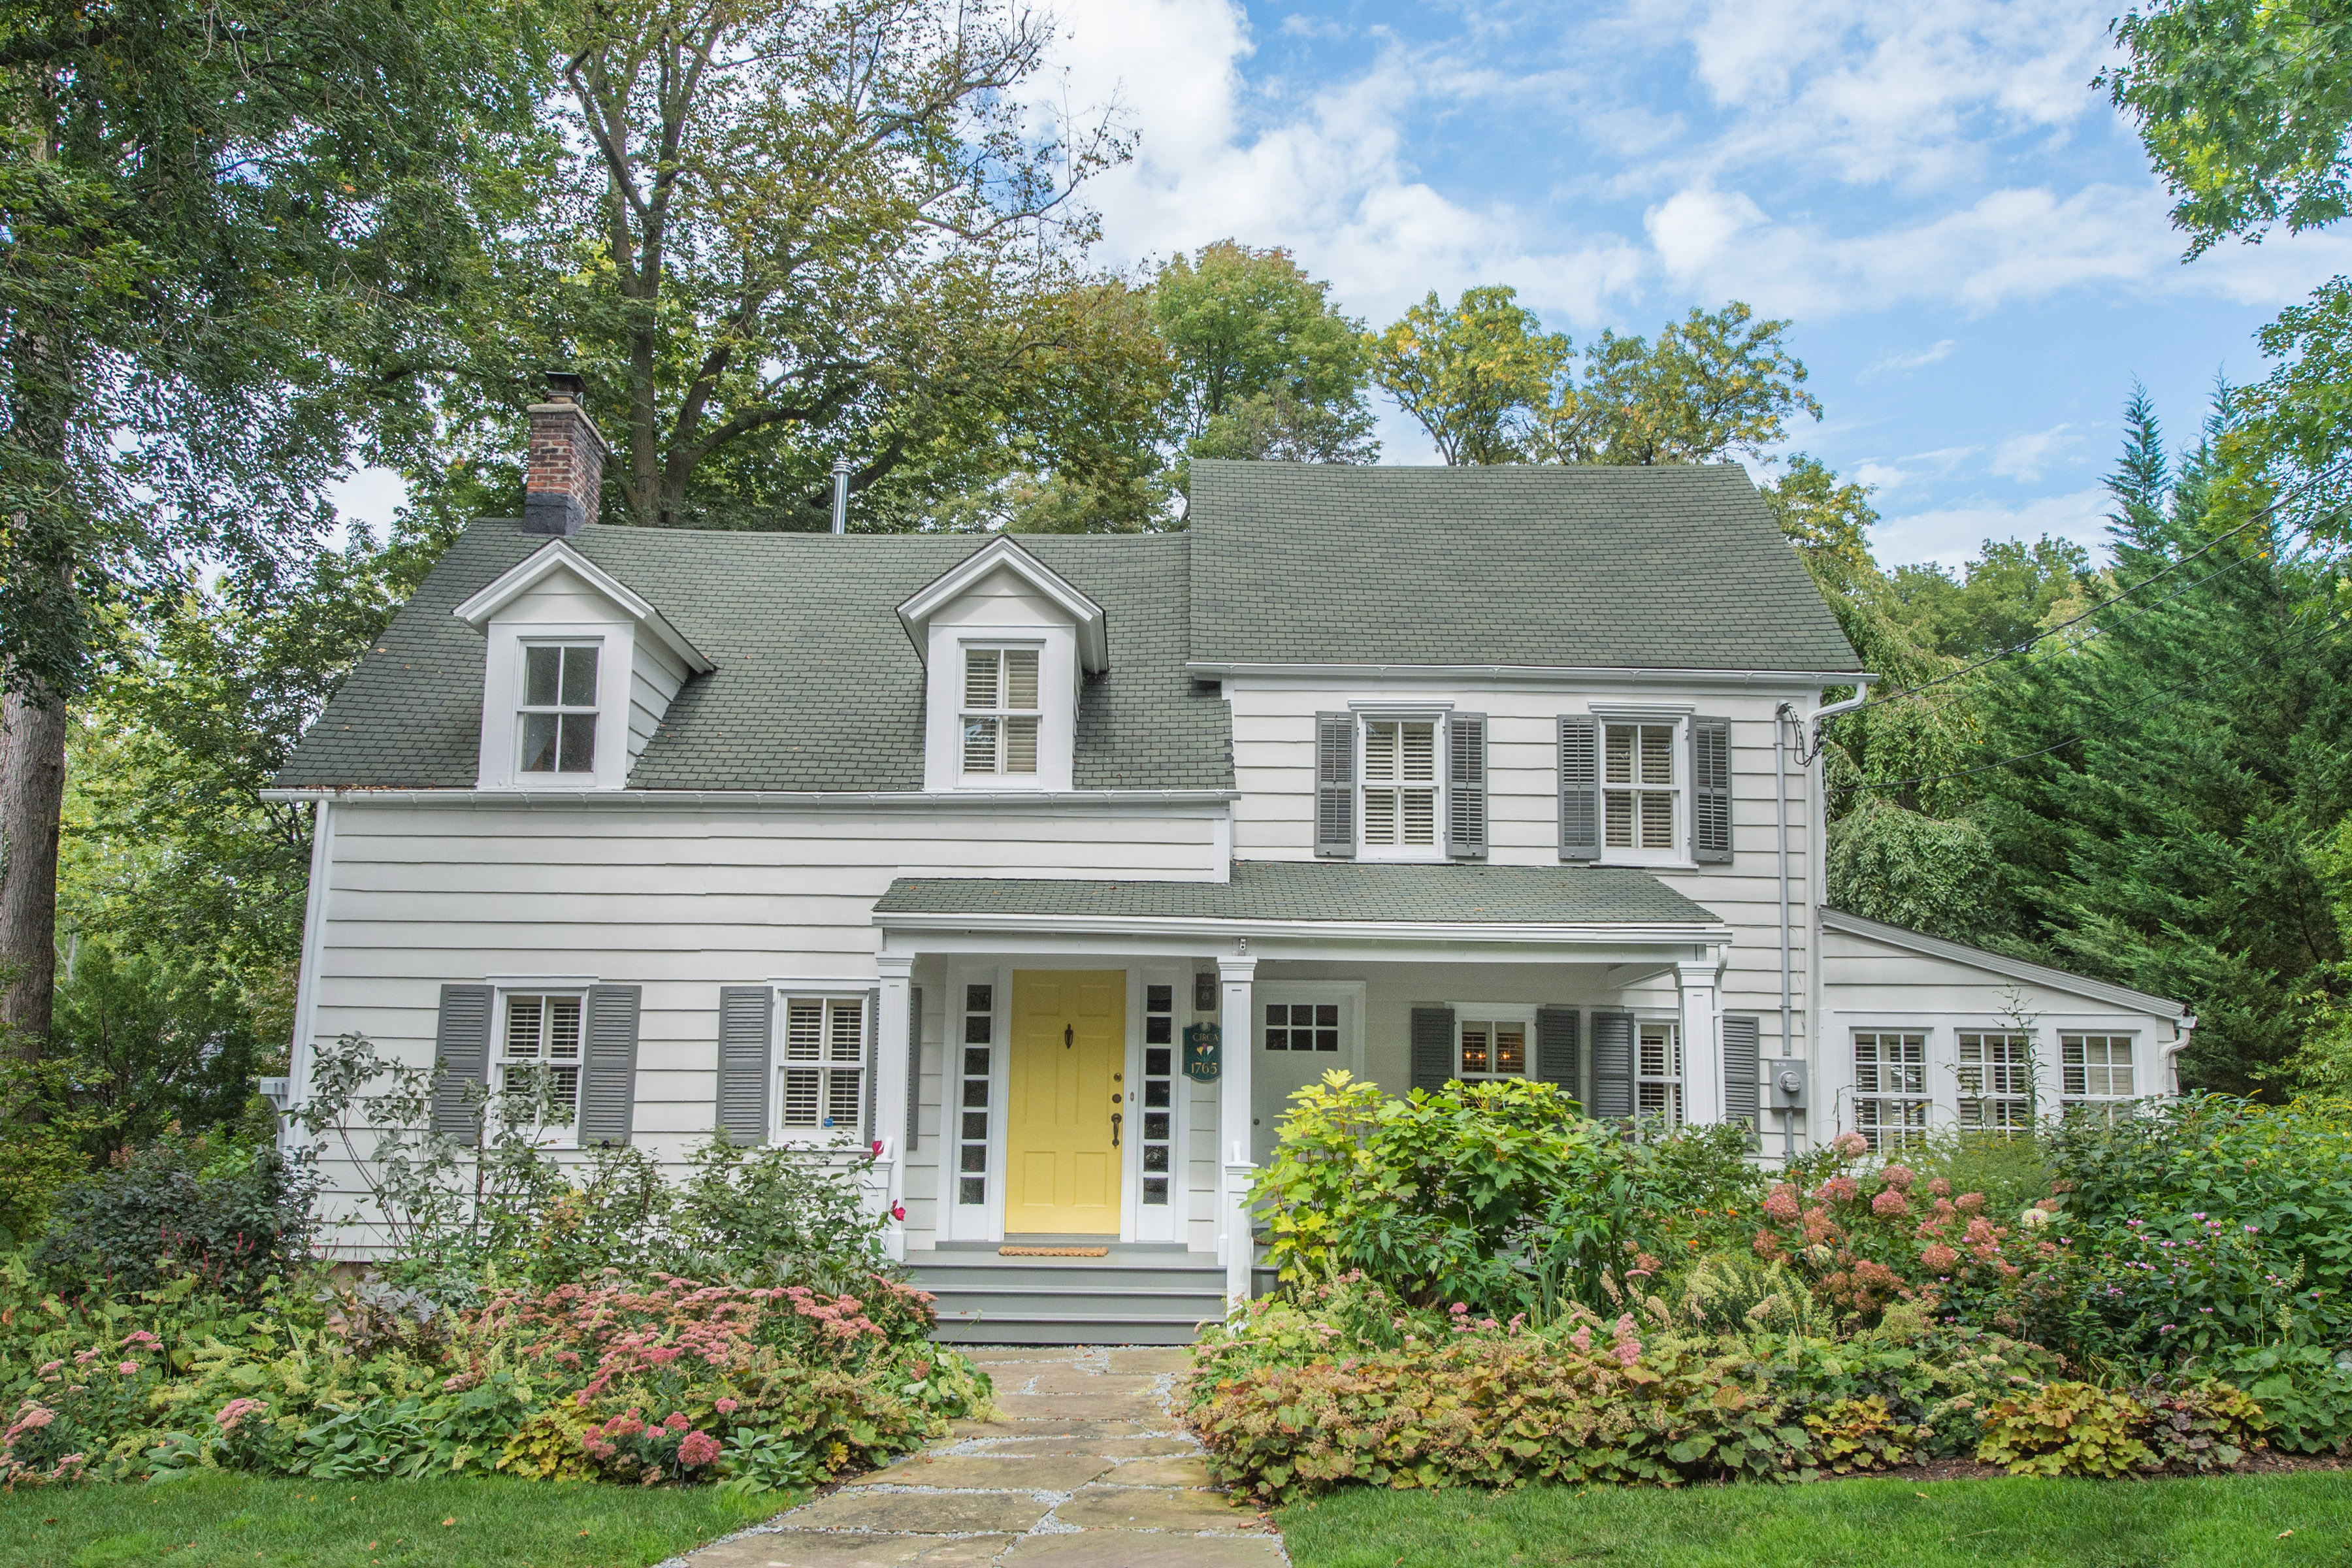 Modern Bliss with Historical Context is listed by The Gosselin Group